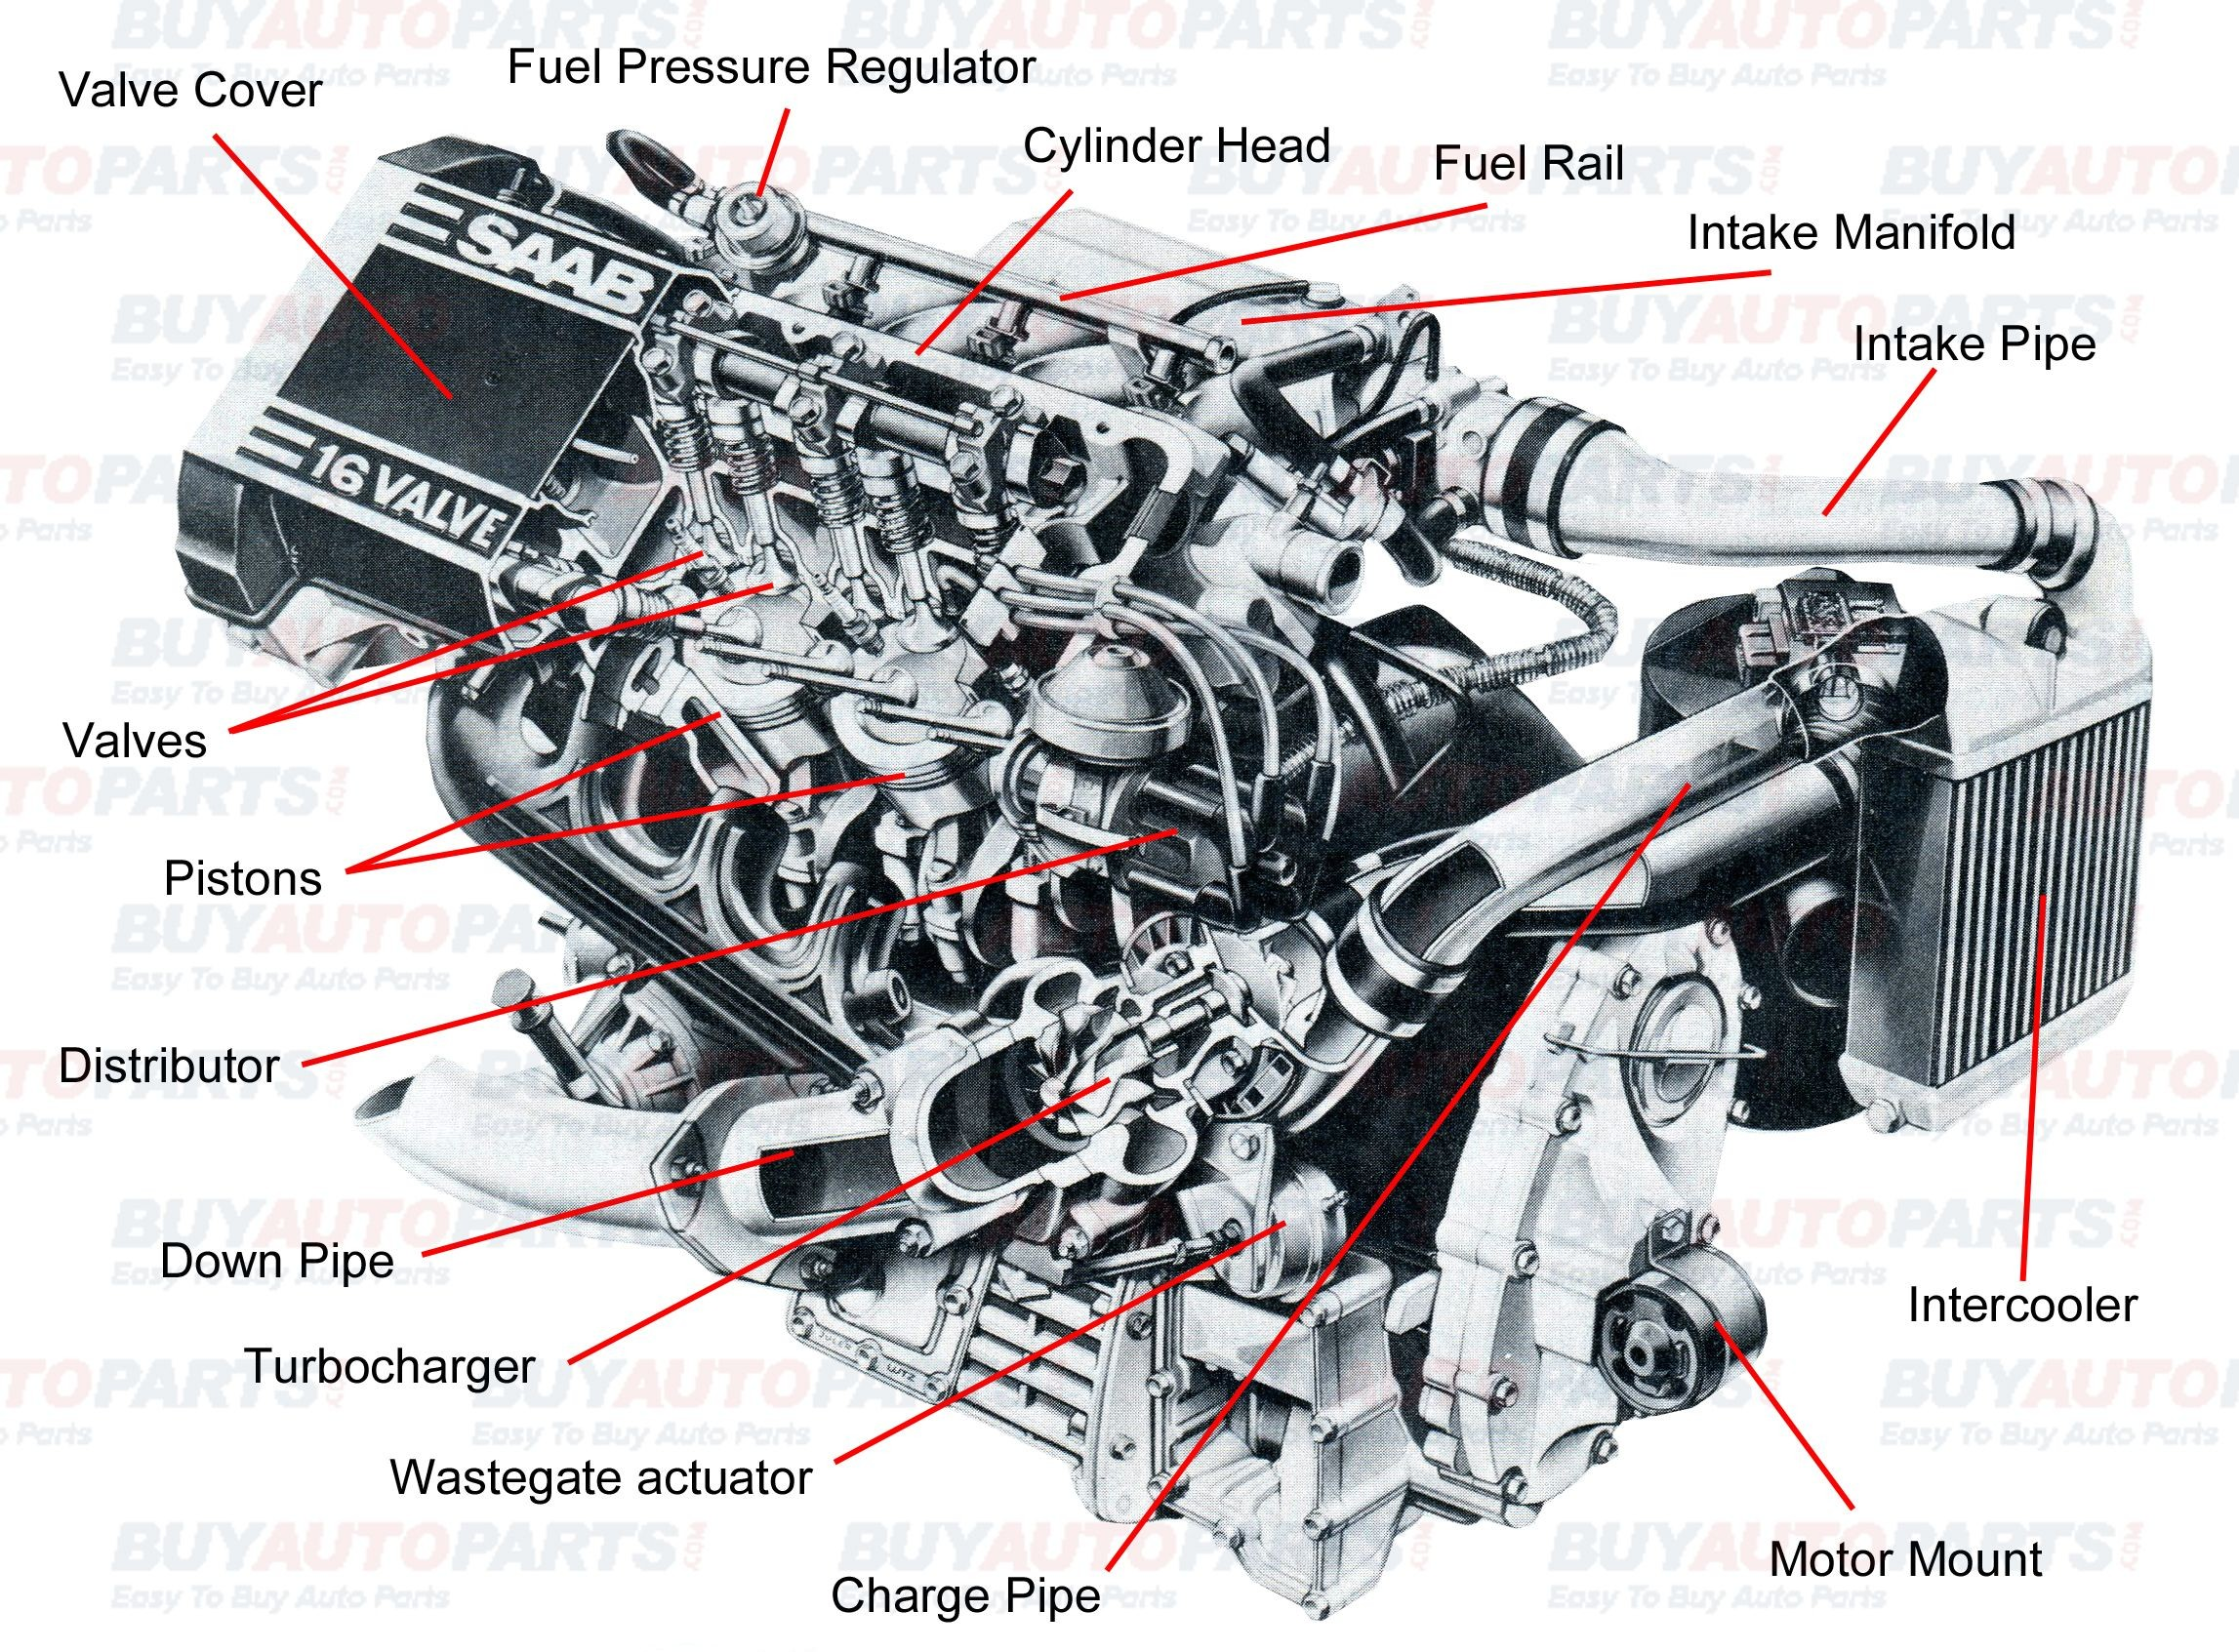 Simple Diesel Engine Diagram Pin by Jimmiejanet Testellamwfz On What Does An Engine with Turbo Of Simple Diesel Engine Diagram 97 ford F 350 7 3 Diesel Engine Diagram